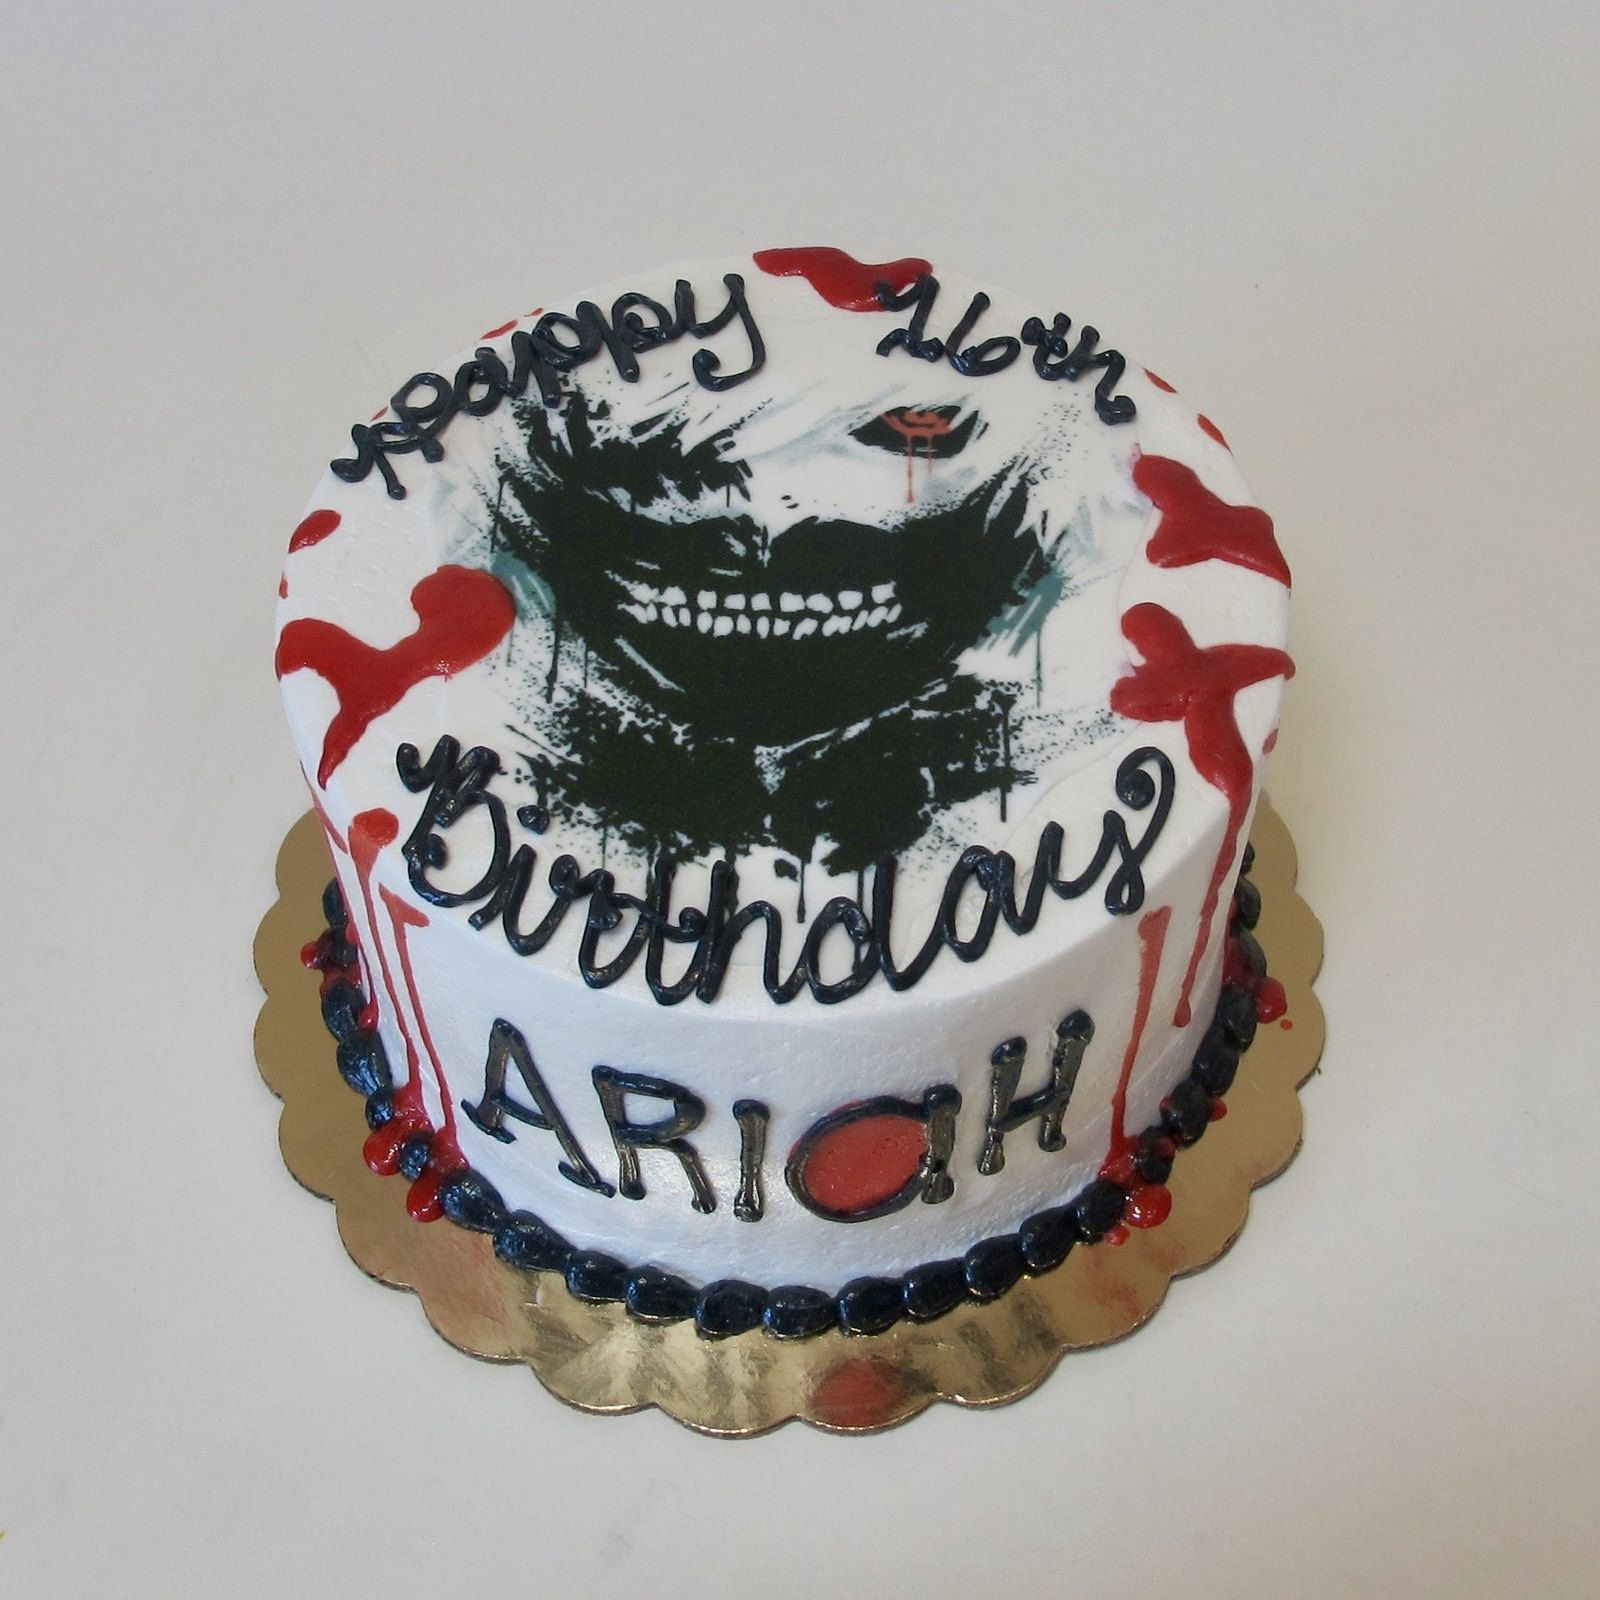 Tokyo Ghoul 16th Birthday 300556 Adult Birthday Cakes Creative